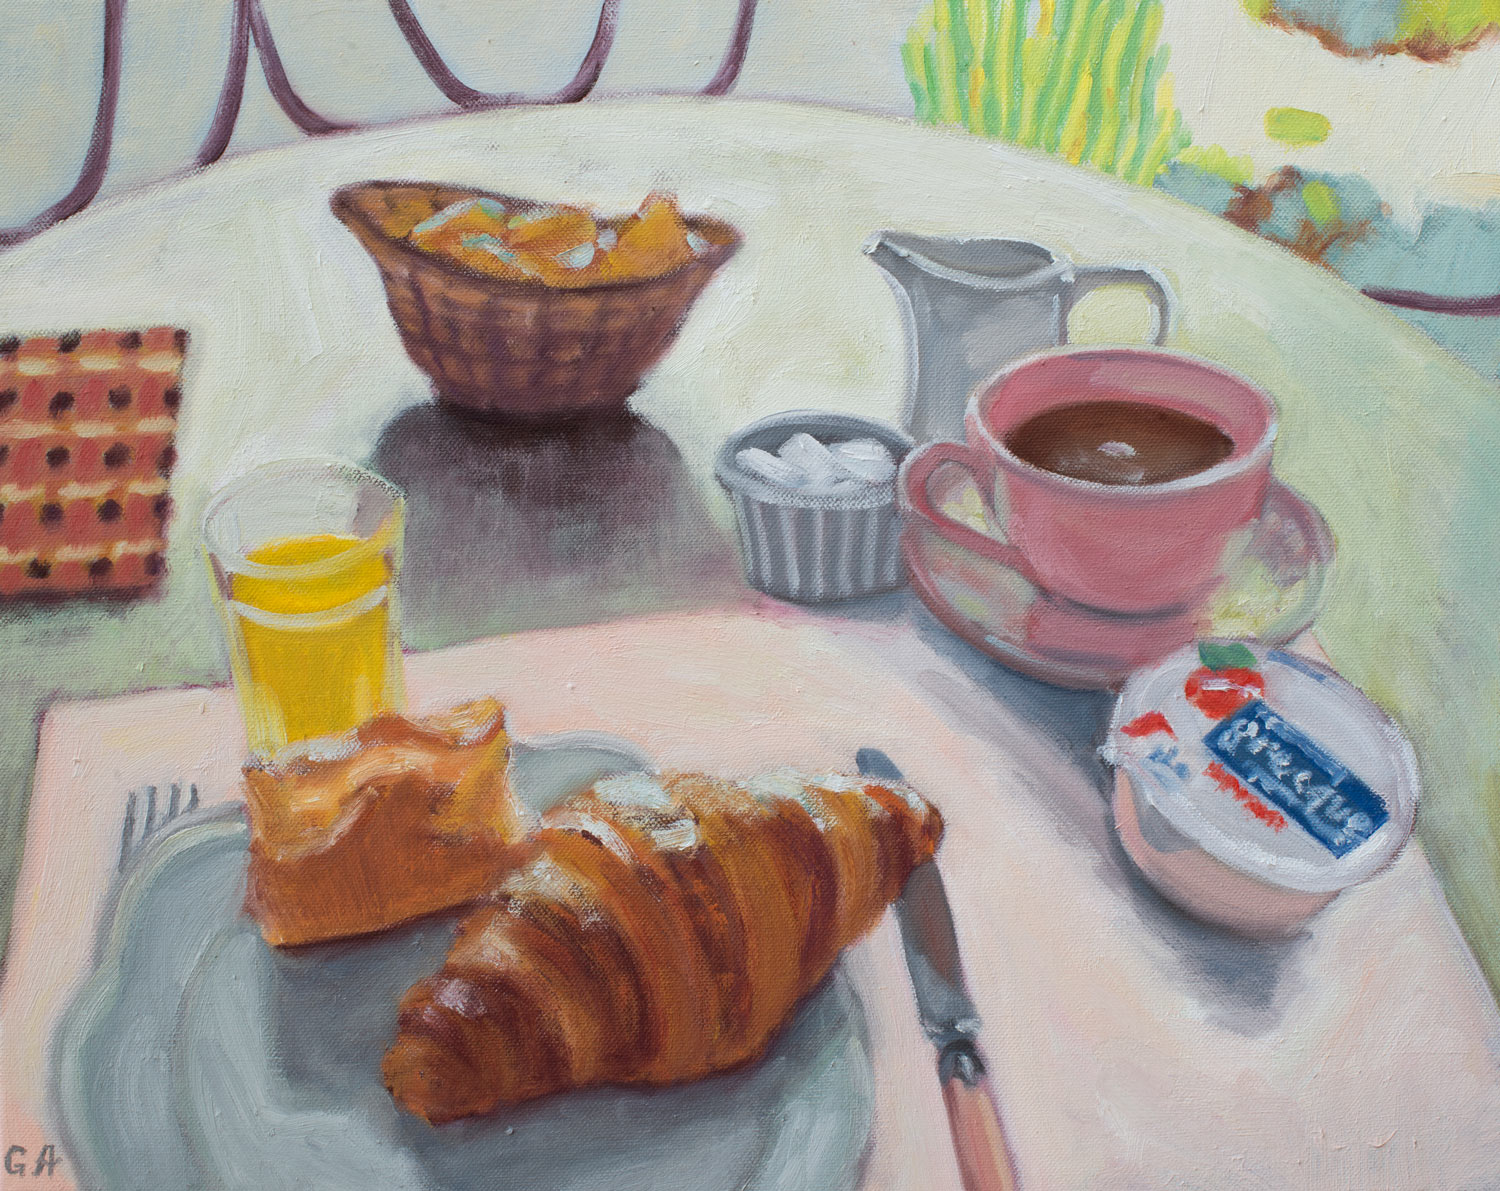 Breakfast-With-Croissant-Giselle-Ayupova-oil-painting.jpg